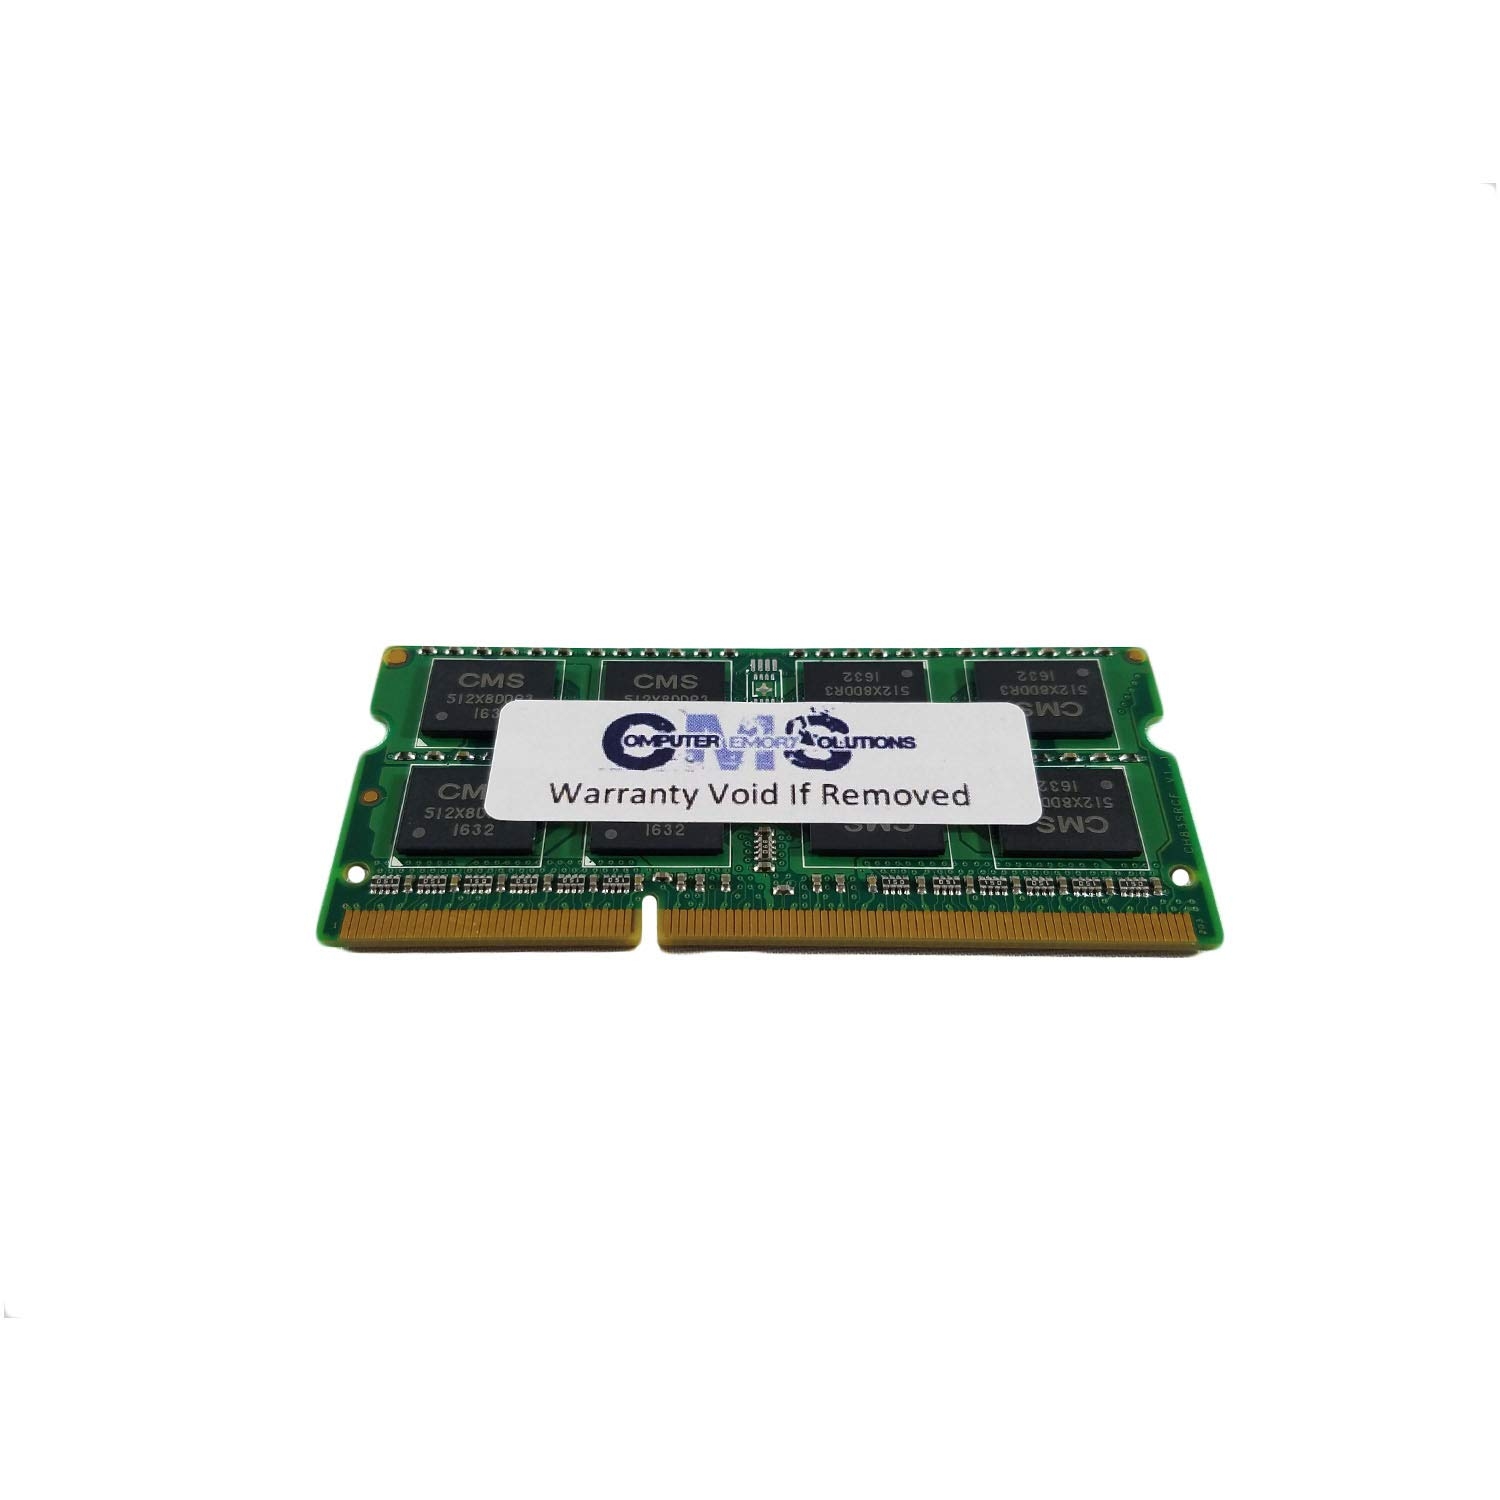 8GB 1x8GB MEMORY RAM Compatible with MSI Notebook GE60 2OE GE60 2PC Apache, GE60 2PE Apache By CMS A8 by Computer Memory Solutions (Image #2)